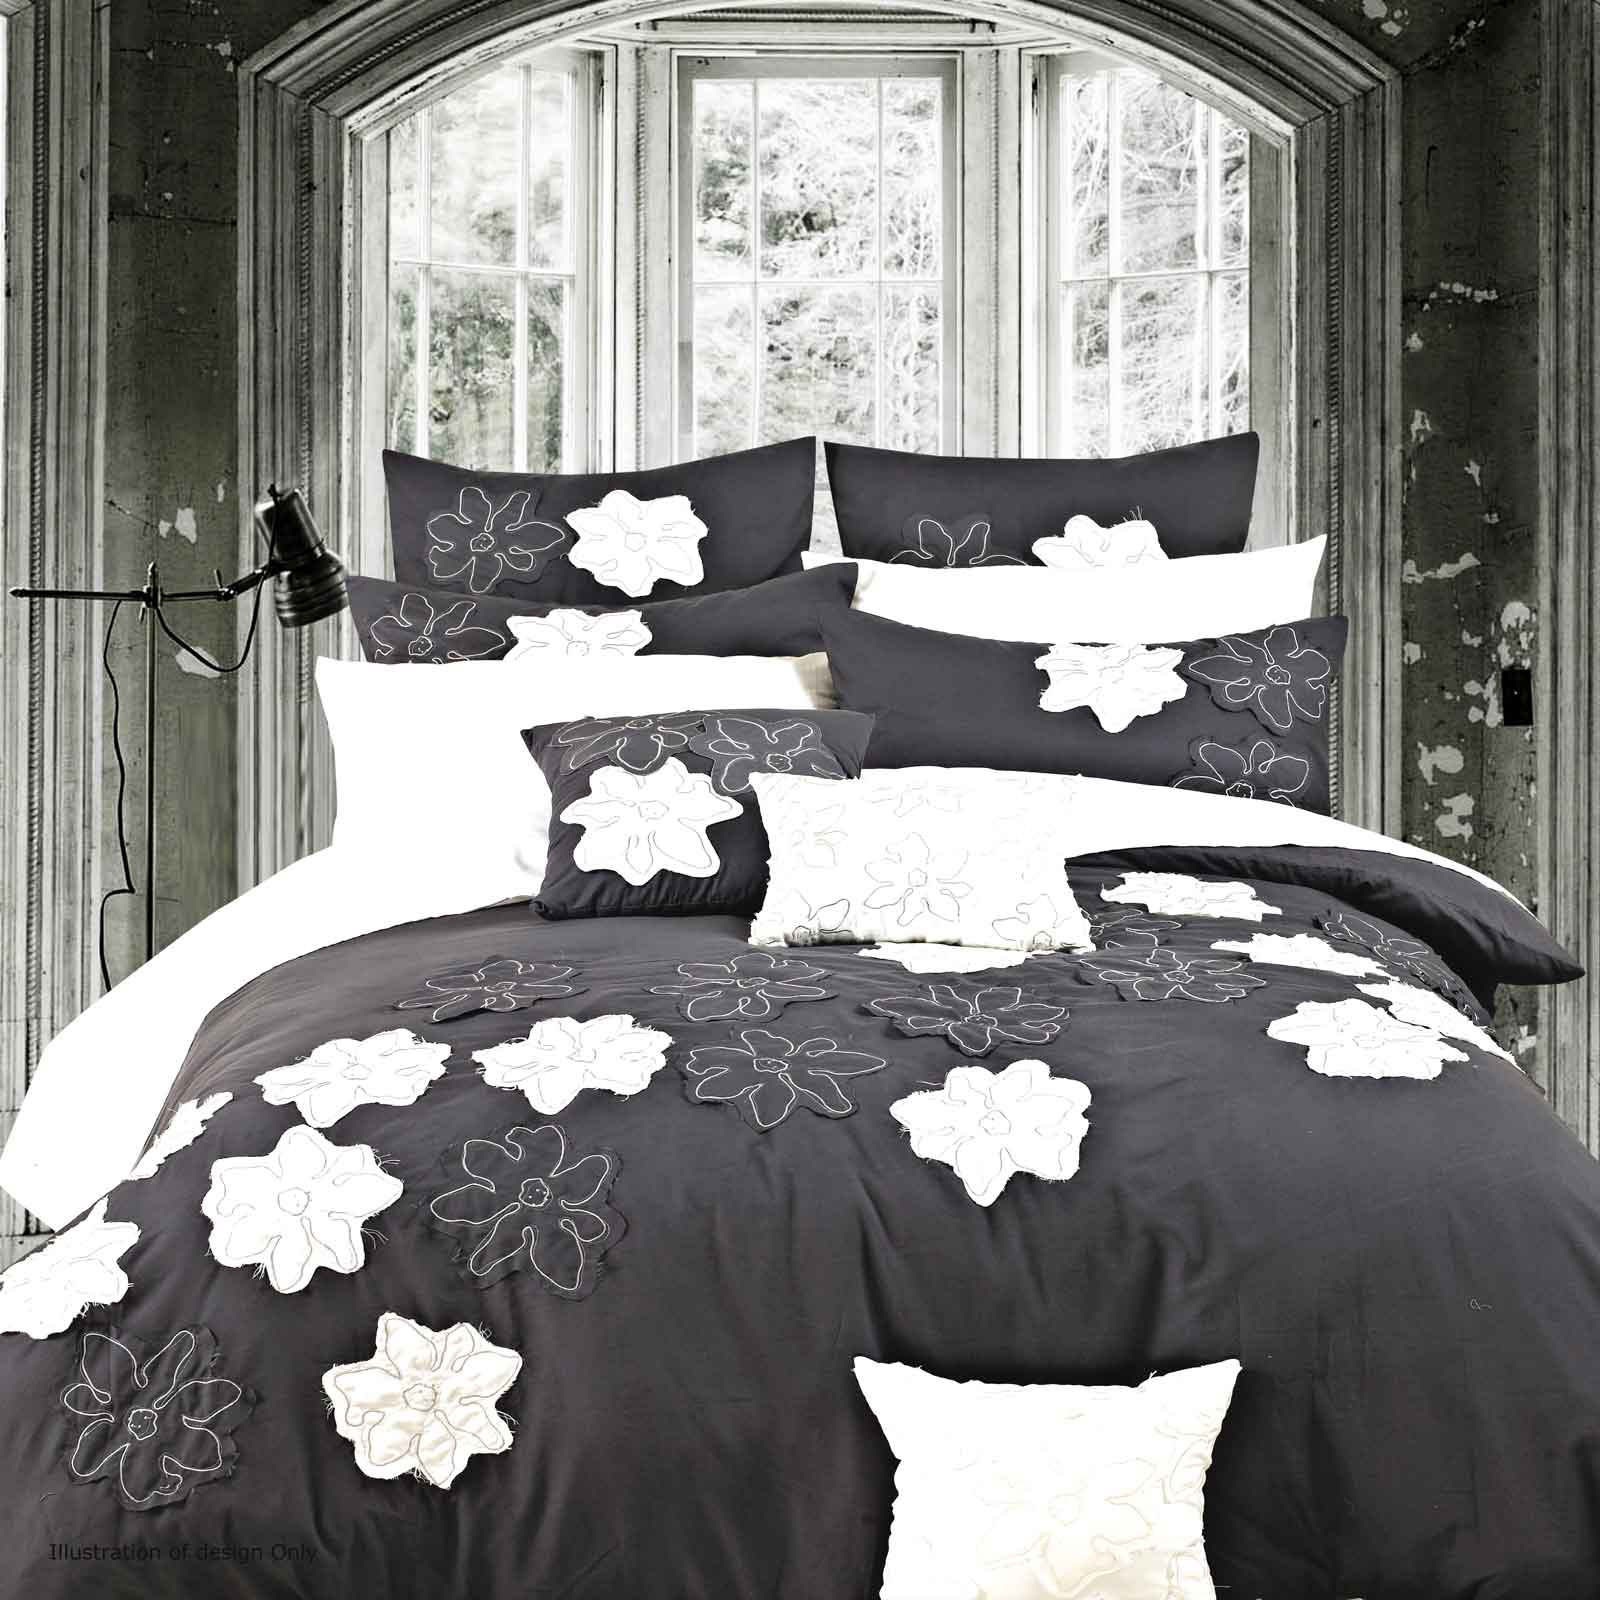 Luxton-Linen-Bernadine-King-Bed-Duvet-Quilt-Cover-Set-3pcs-Bedding-set-S00011K